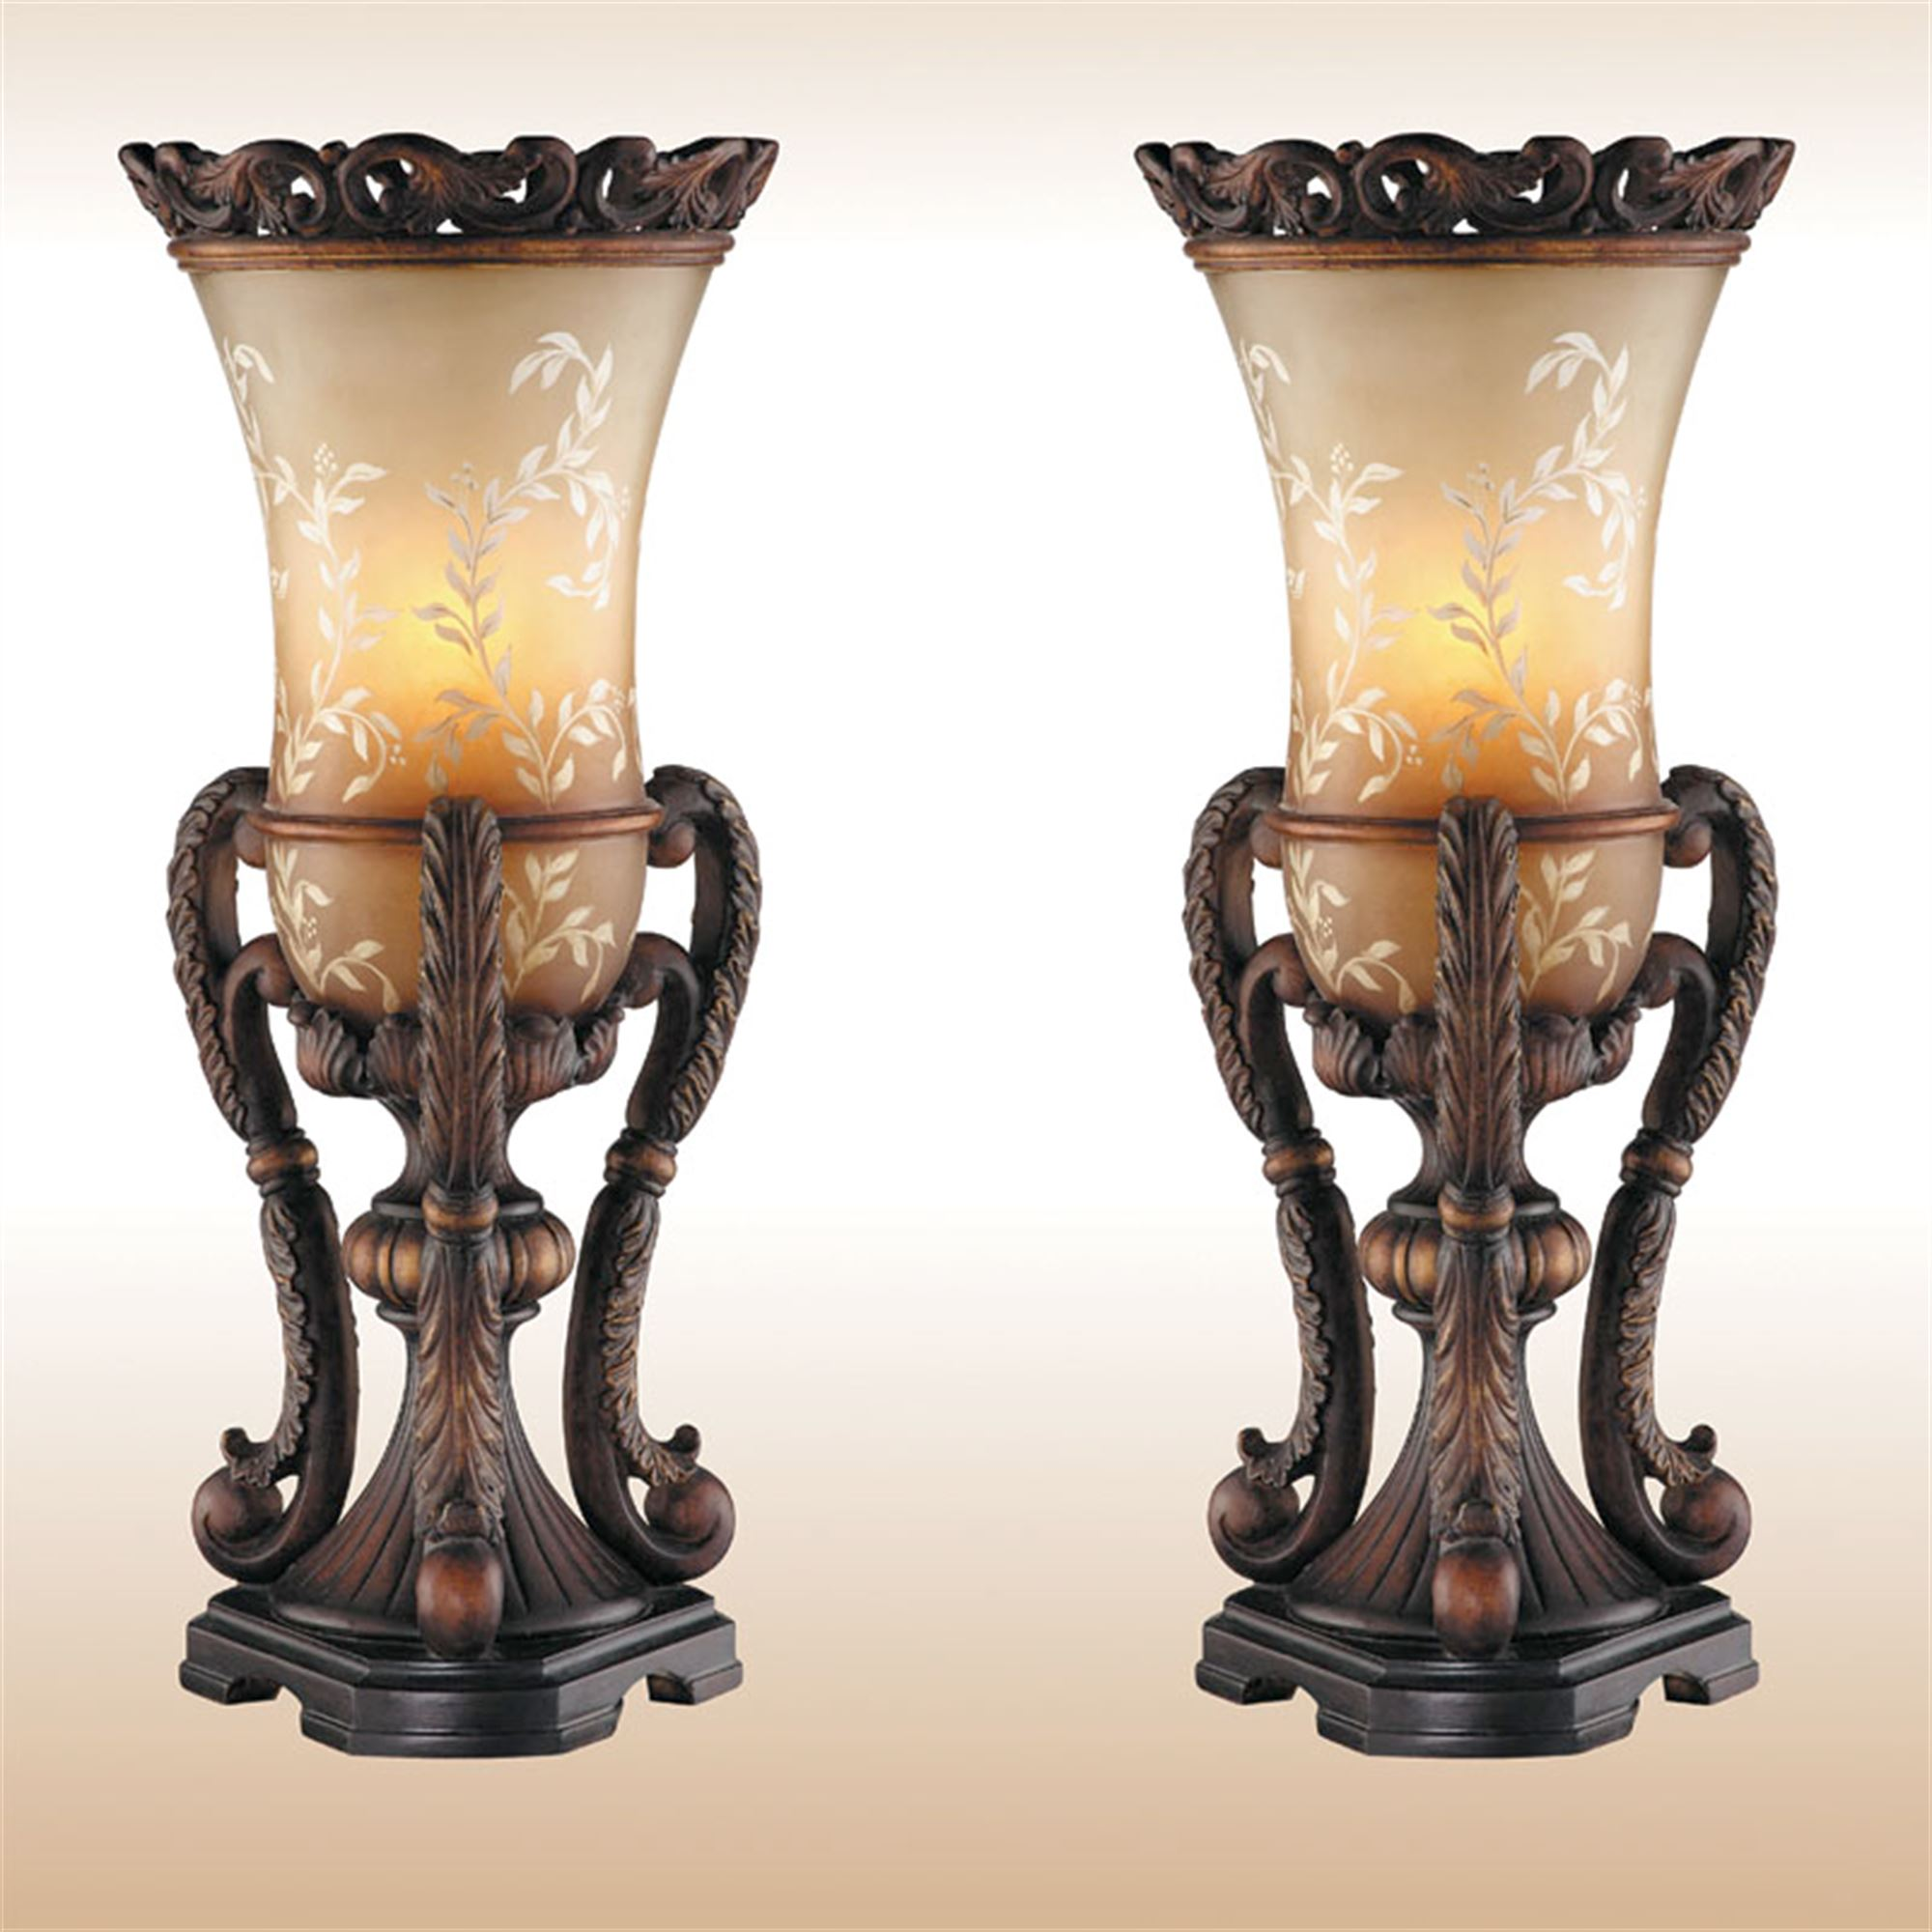 Chitrita Uplight Table Lamp Pair